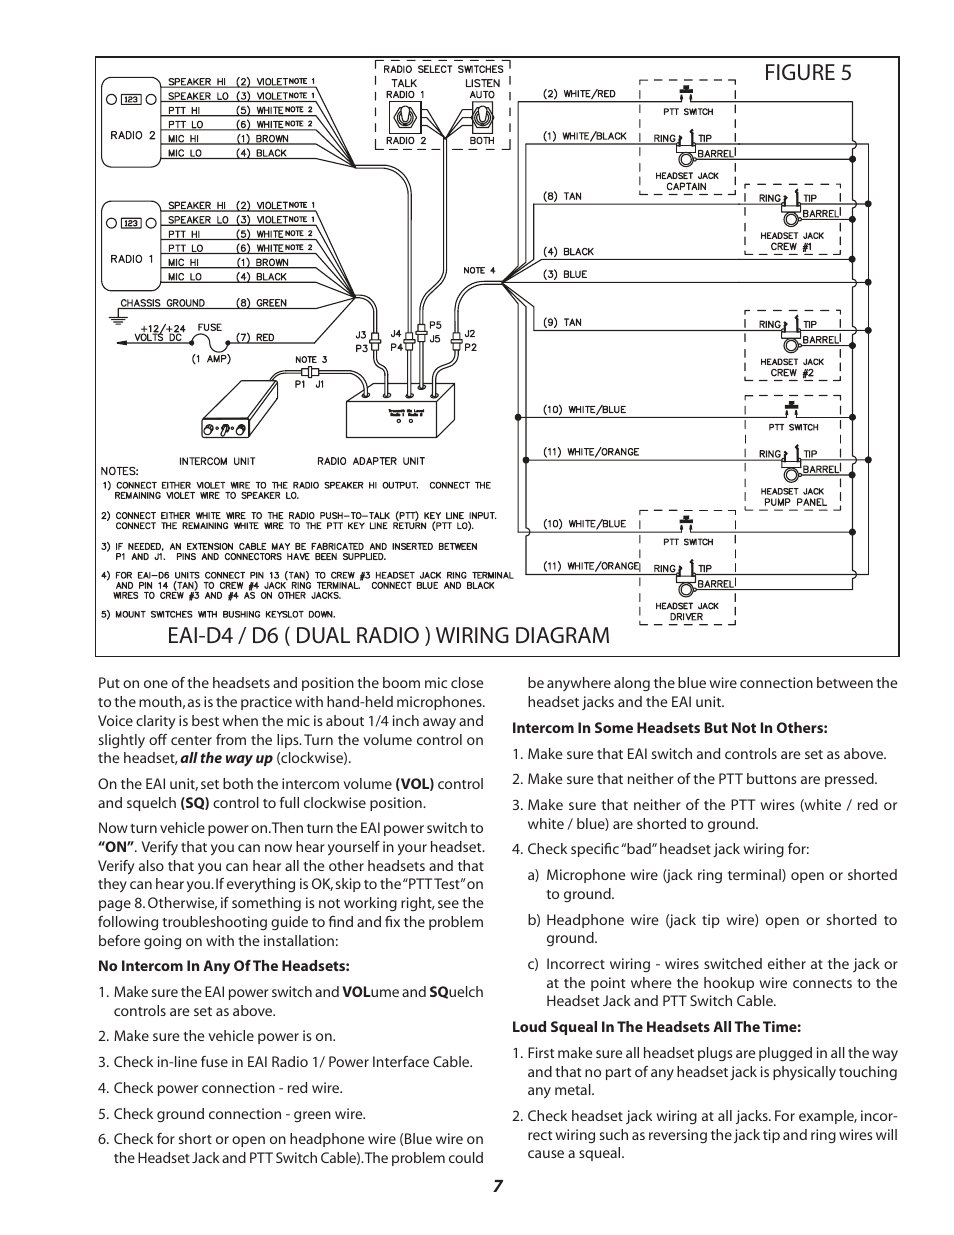 Figure 5 Eai  D6   Dual Radio   Wiring Diagram